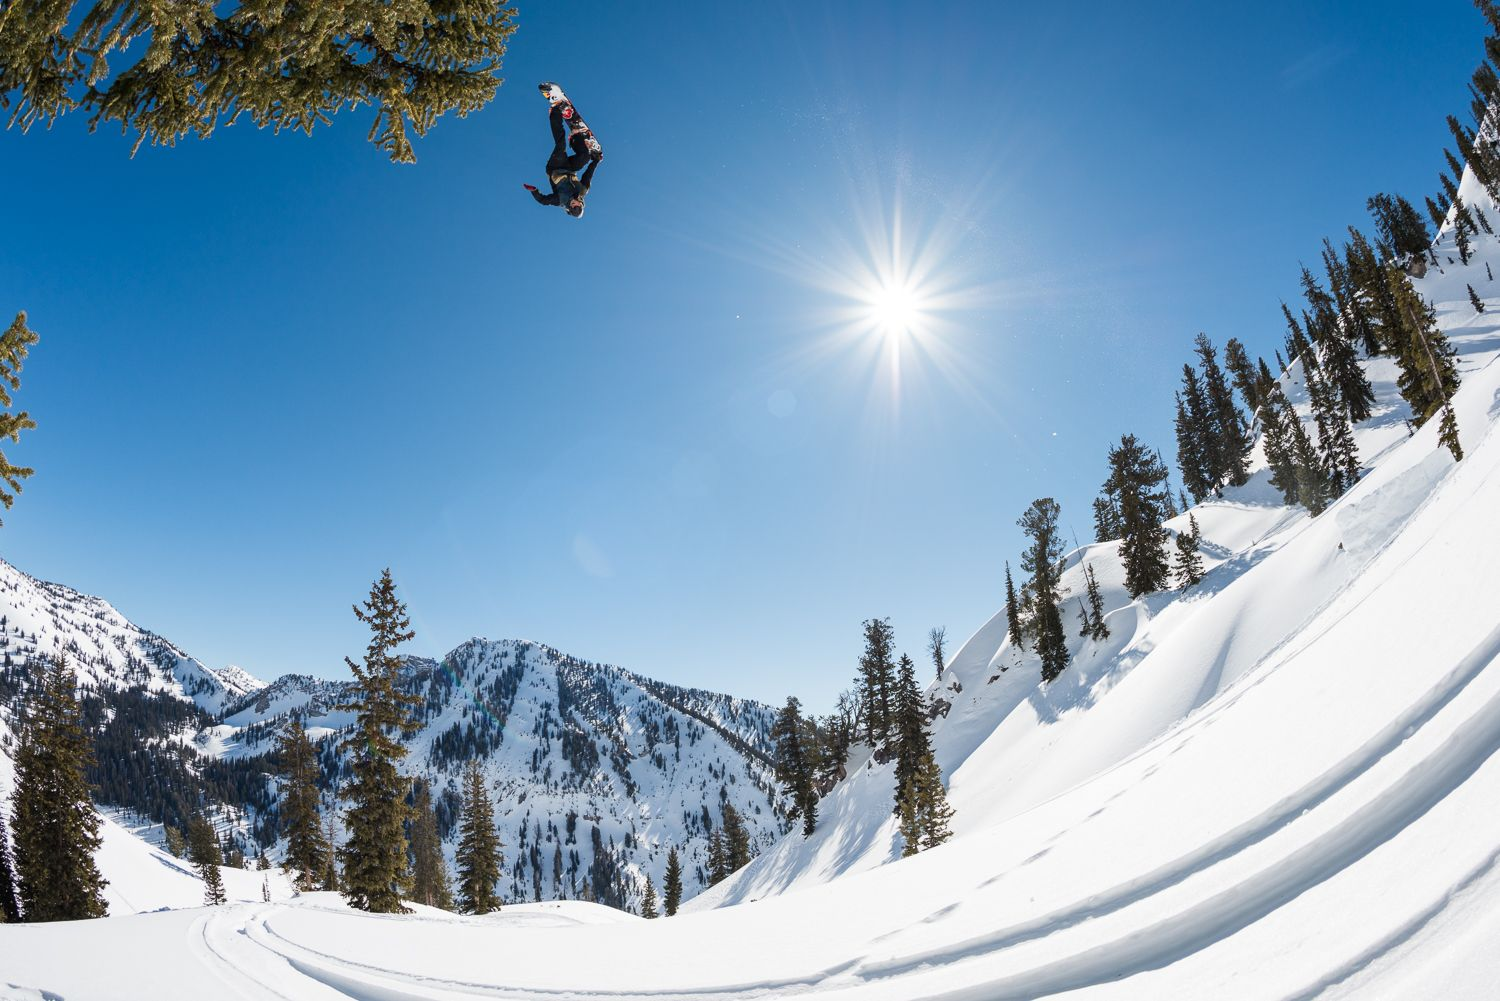 The Travis Rice Pro Snowboard and the Snowboards of The